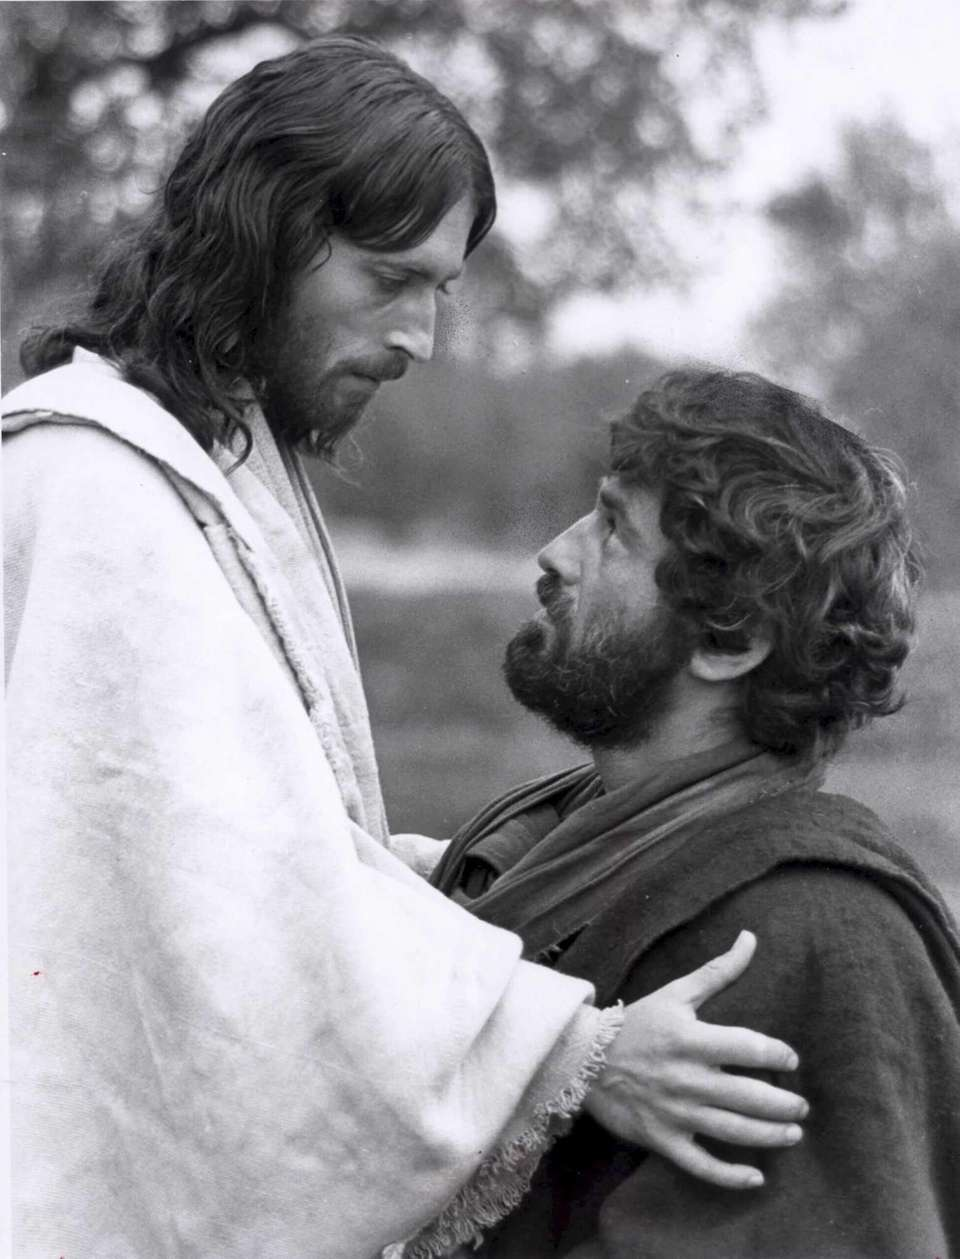 Robert Powell starred as Jesus Christ and James